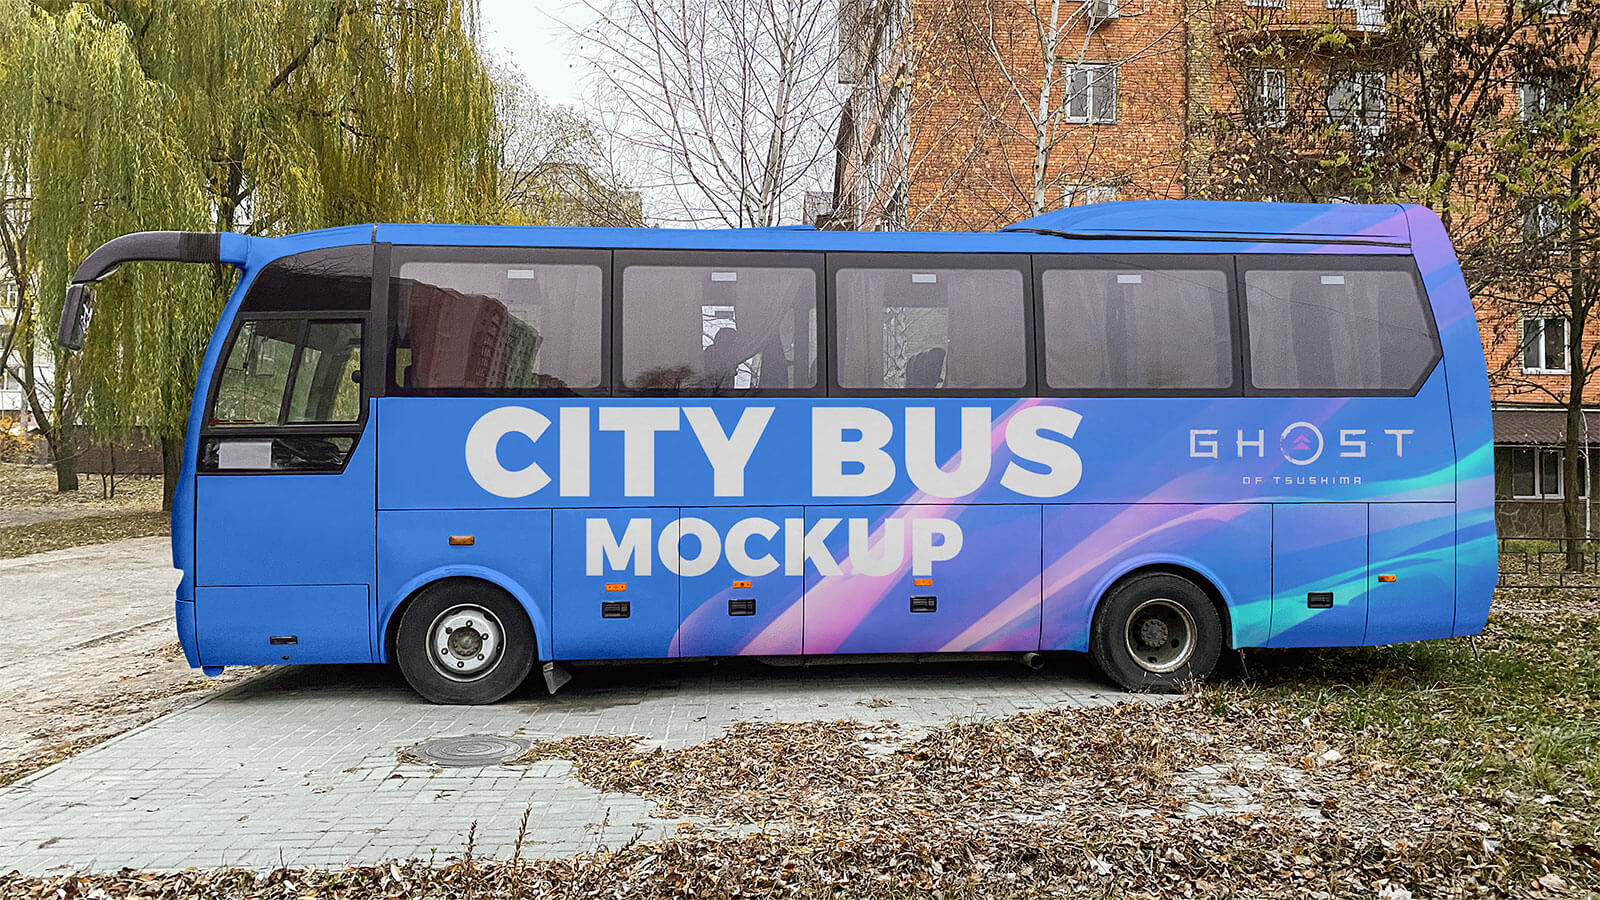 Free-City-Metro-Bus-Vehicle-Branding-Mockup-PSD-File